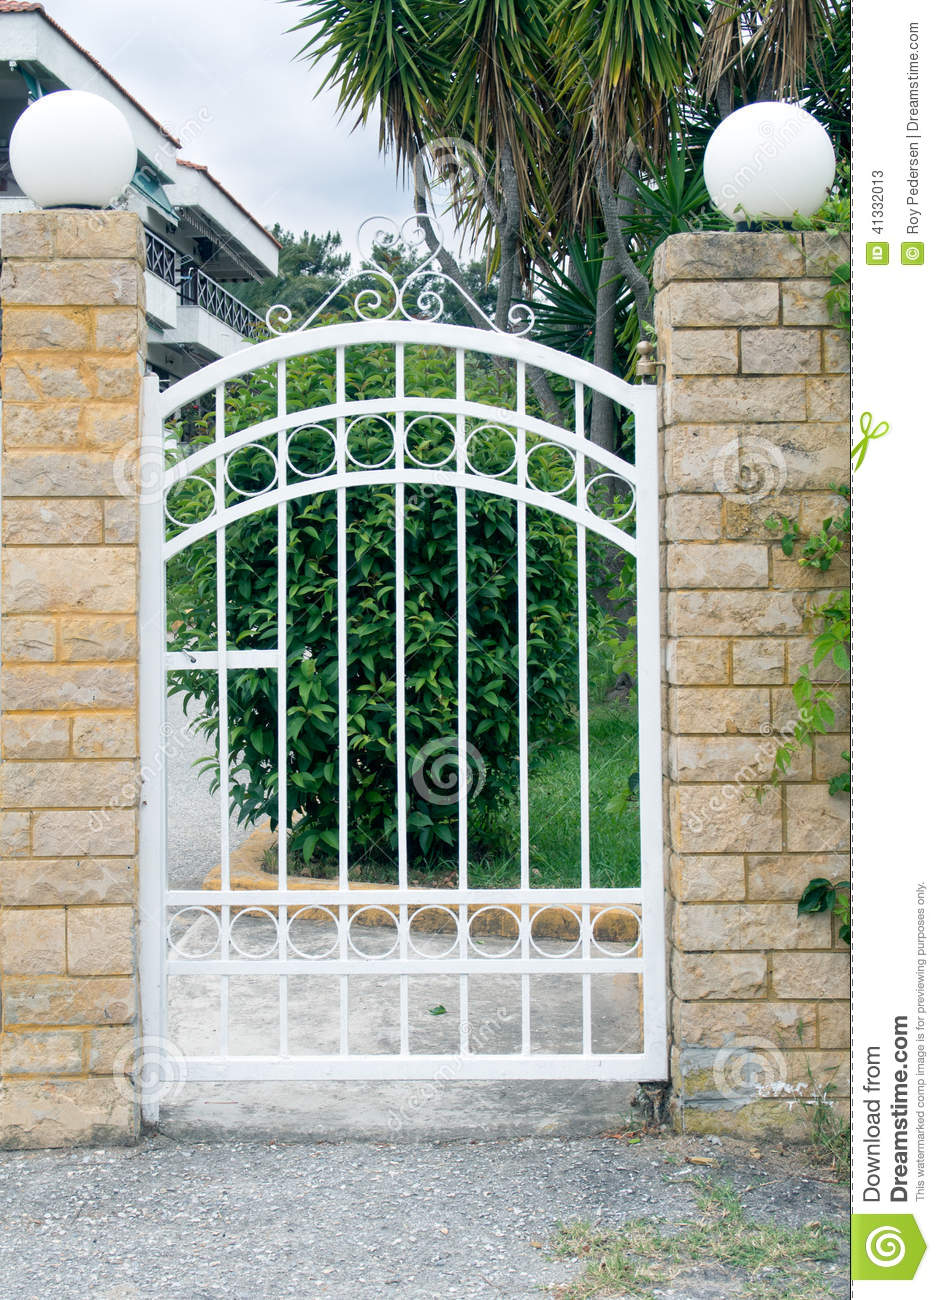 Stock Photo Small Gate Pedestrian Leading Up To House Image41332013 on German Style House Plans